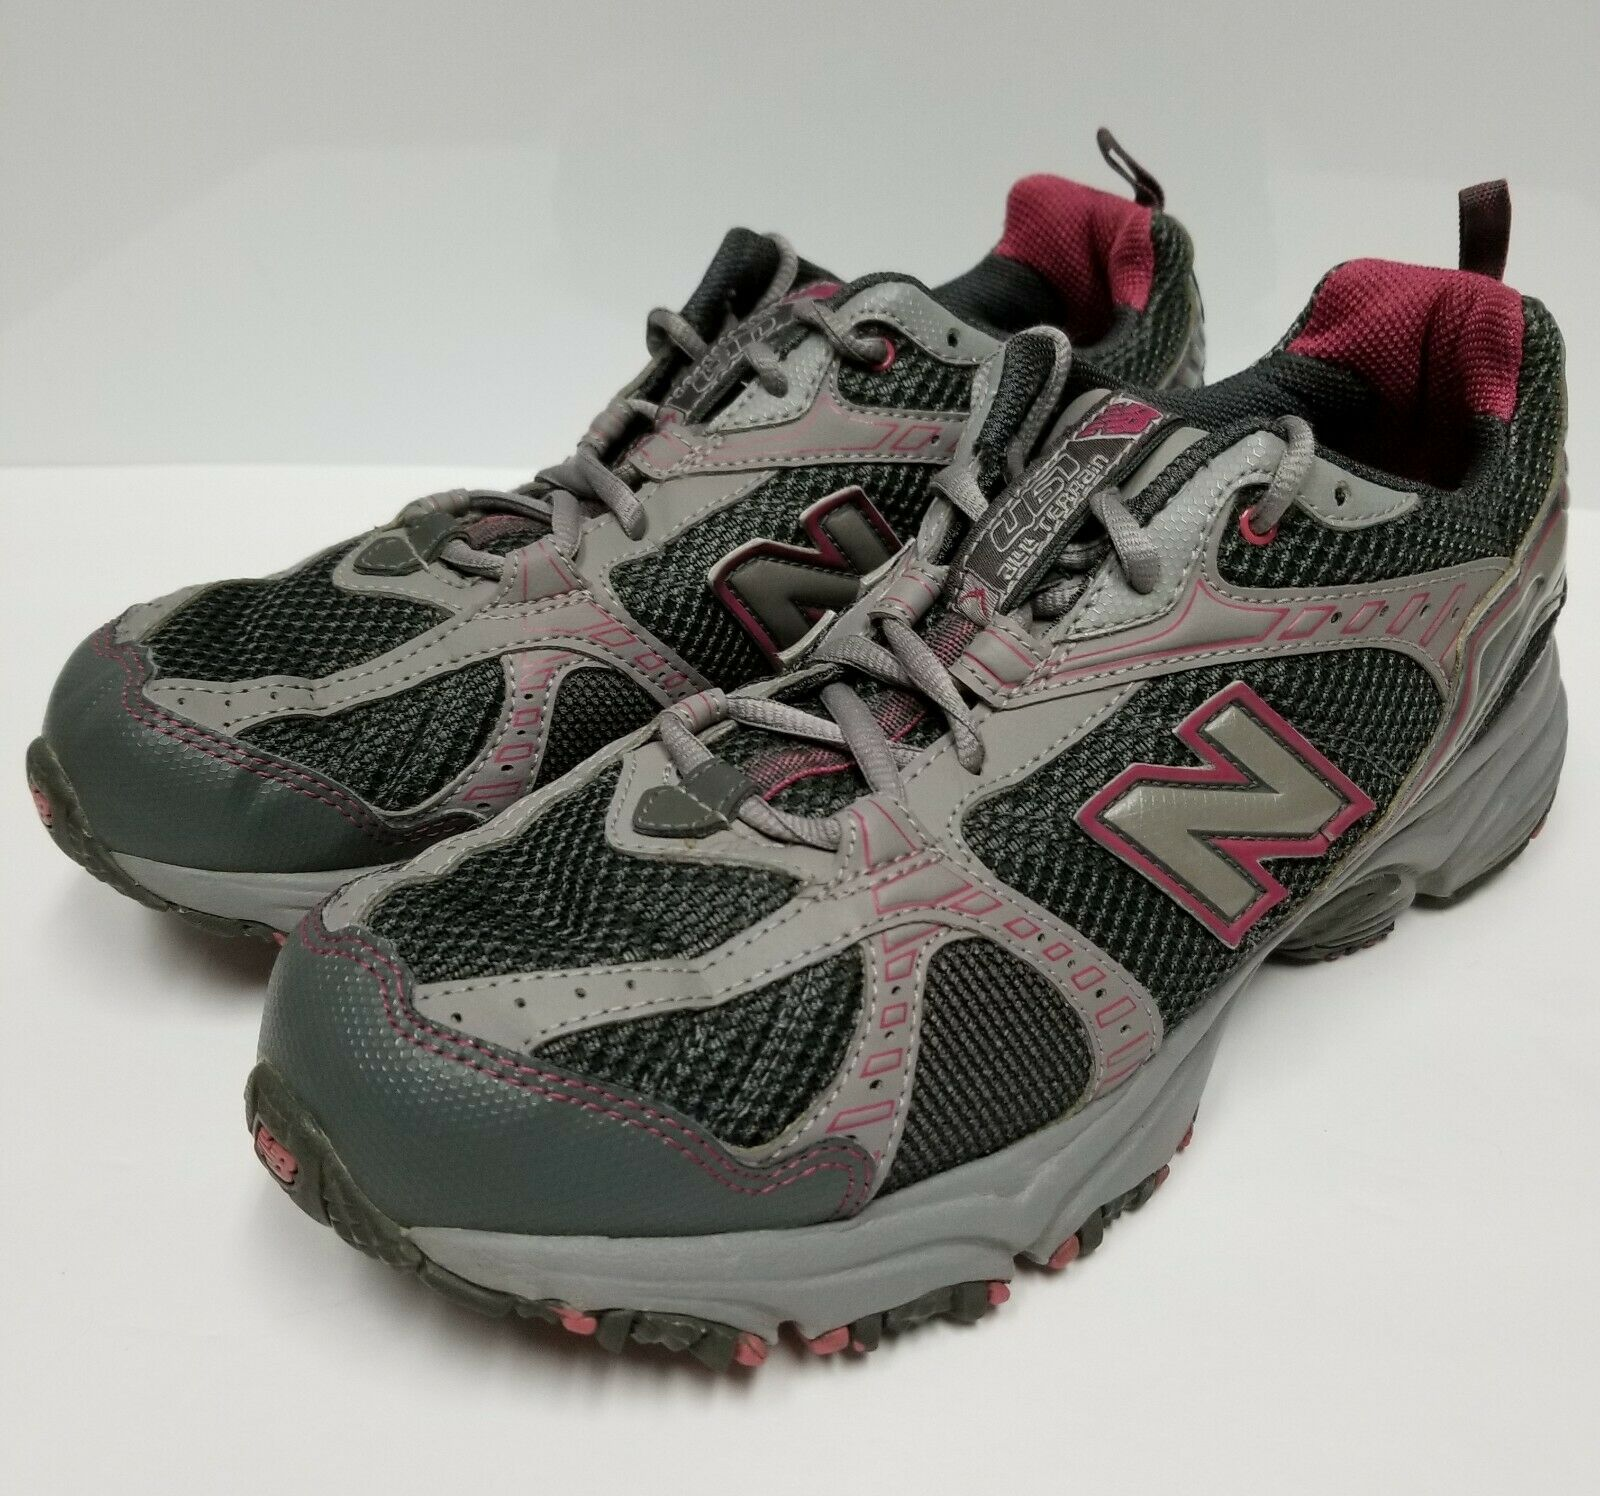 New Balance, Ub1 All Terrain, Men's, Grey, Size 11, Athletic Sneakers